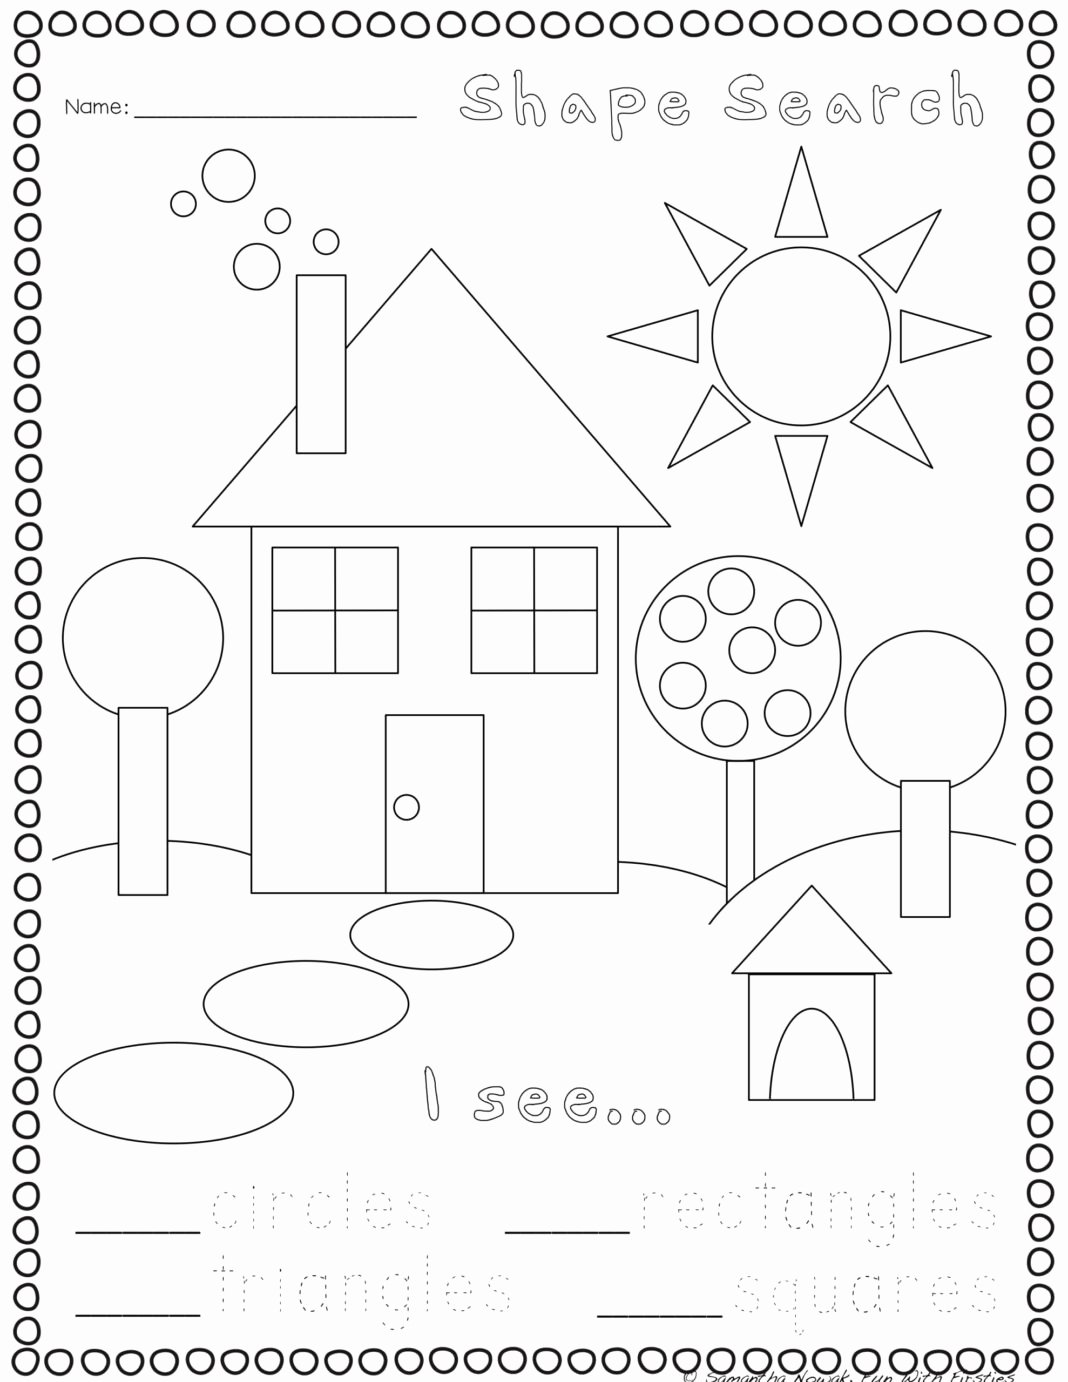 Worksheets for Preschoolers About Shapes Lovely Worksheets Print Go Geometry Practice Worksheets Preschool